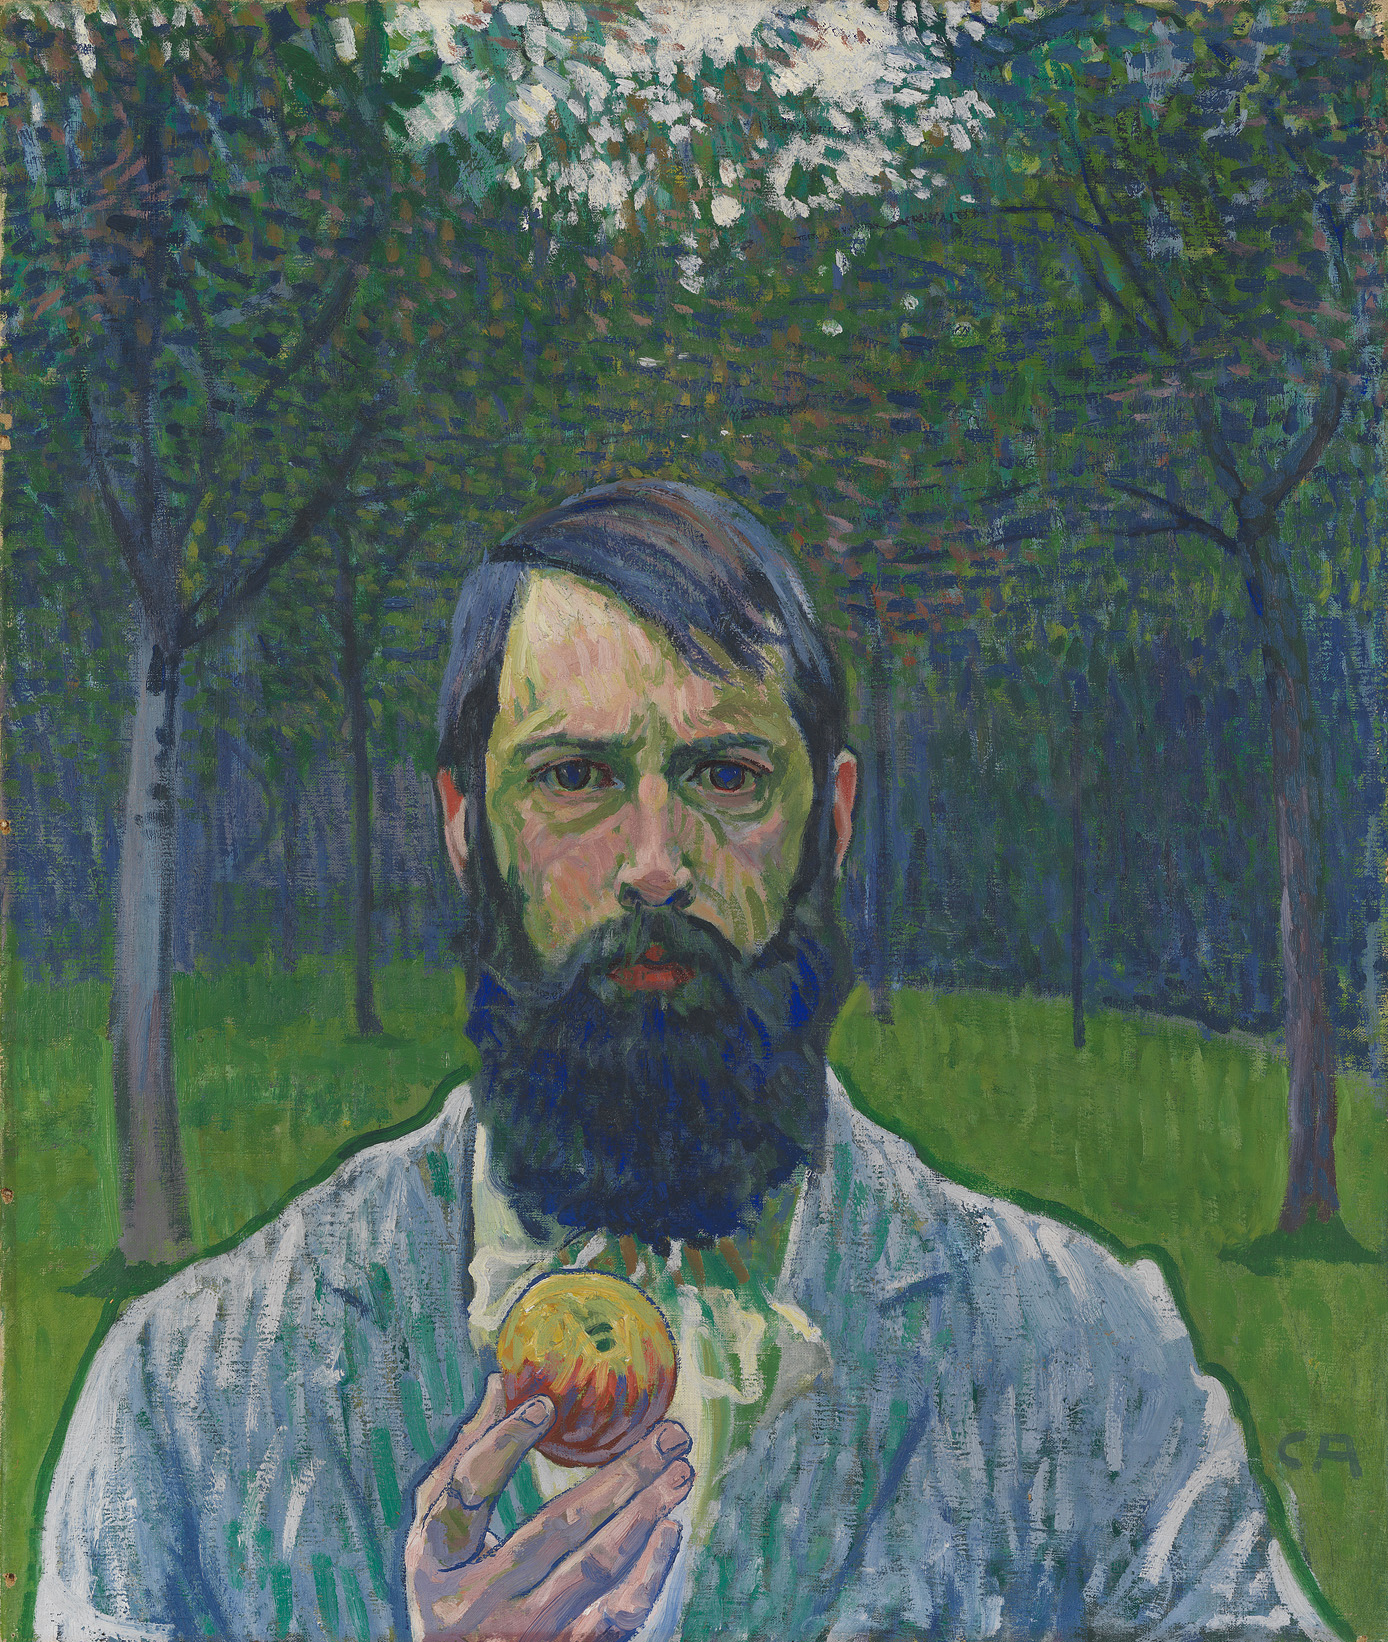 Cuno Amiet, Self-portrait with Apple, 1901/02